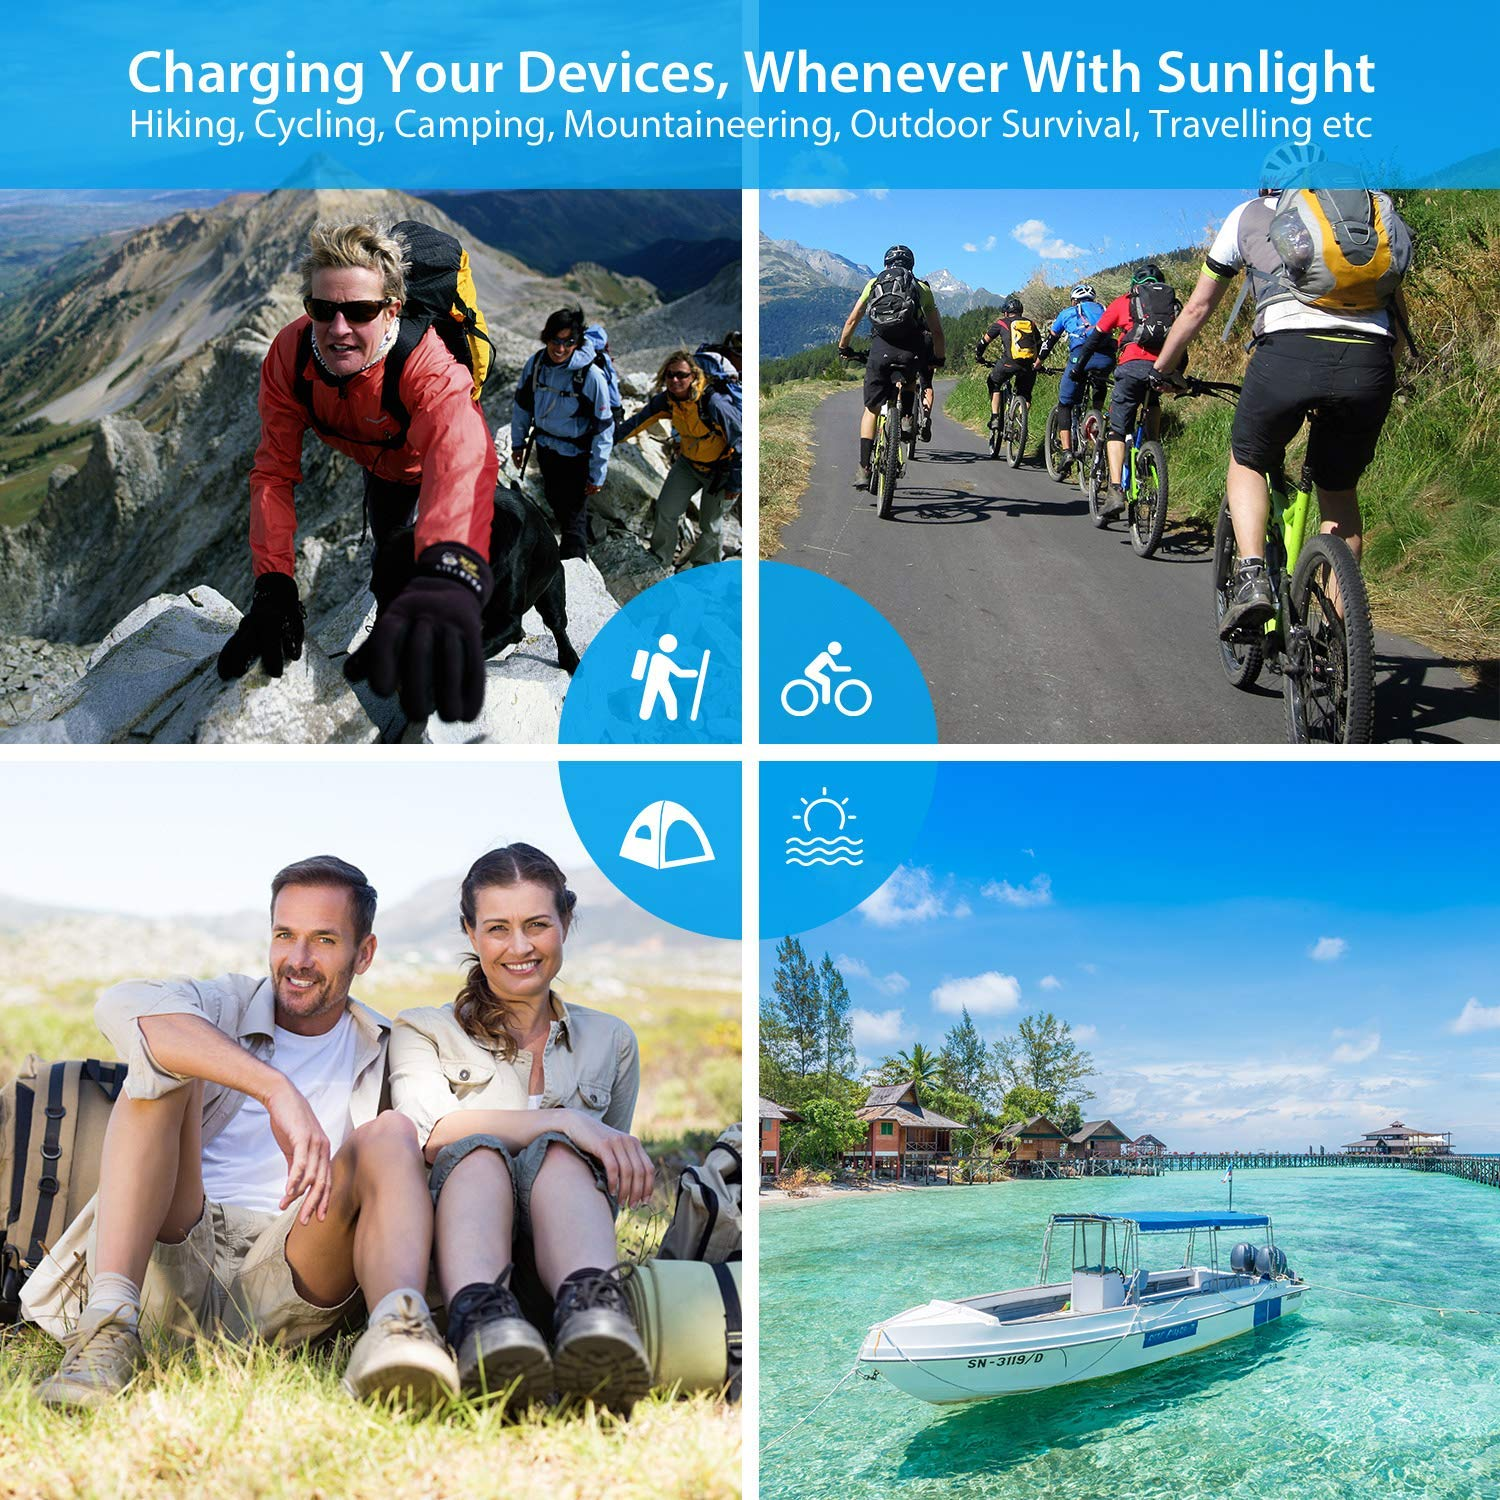 21W Portable Foldable Solar Panel Charger, Dual USB 2.4A Fast Solar Charger,Portable Outdoor Solar Power Charger for Camping,Hiking, Portable Charger for iPhone X 8,iPad,Android,Galaxy S8 Edge,More by WISSBLUE (Image #7)